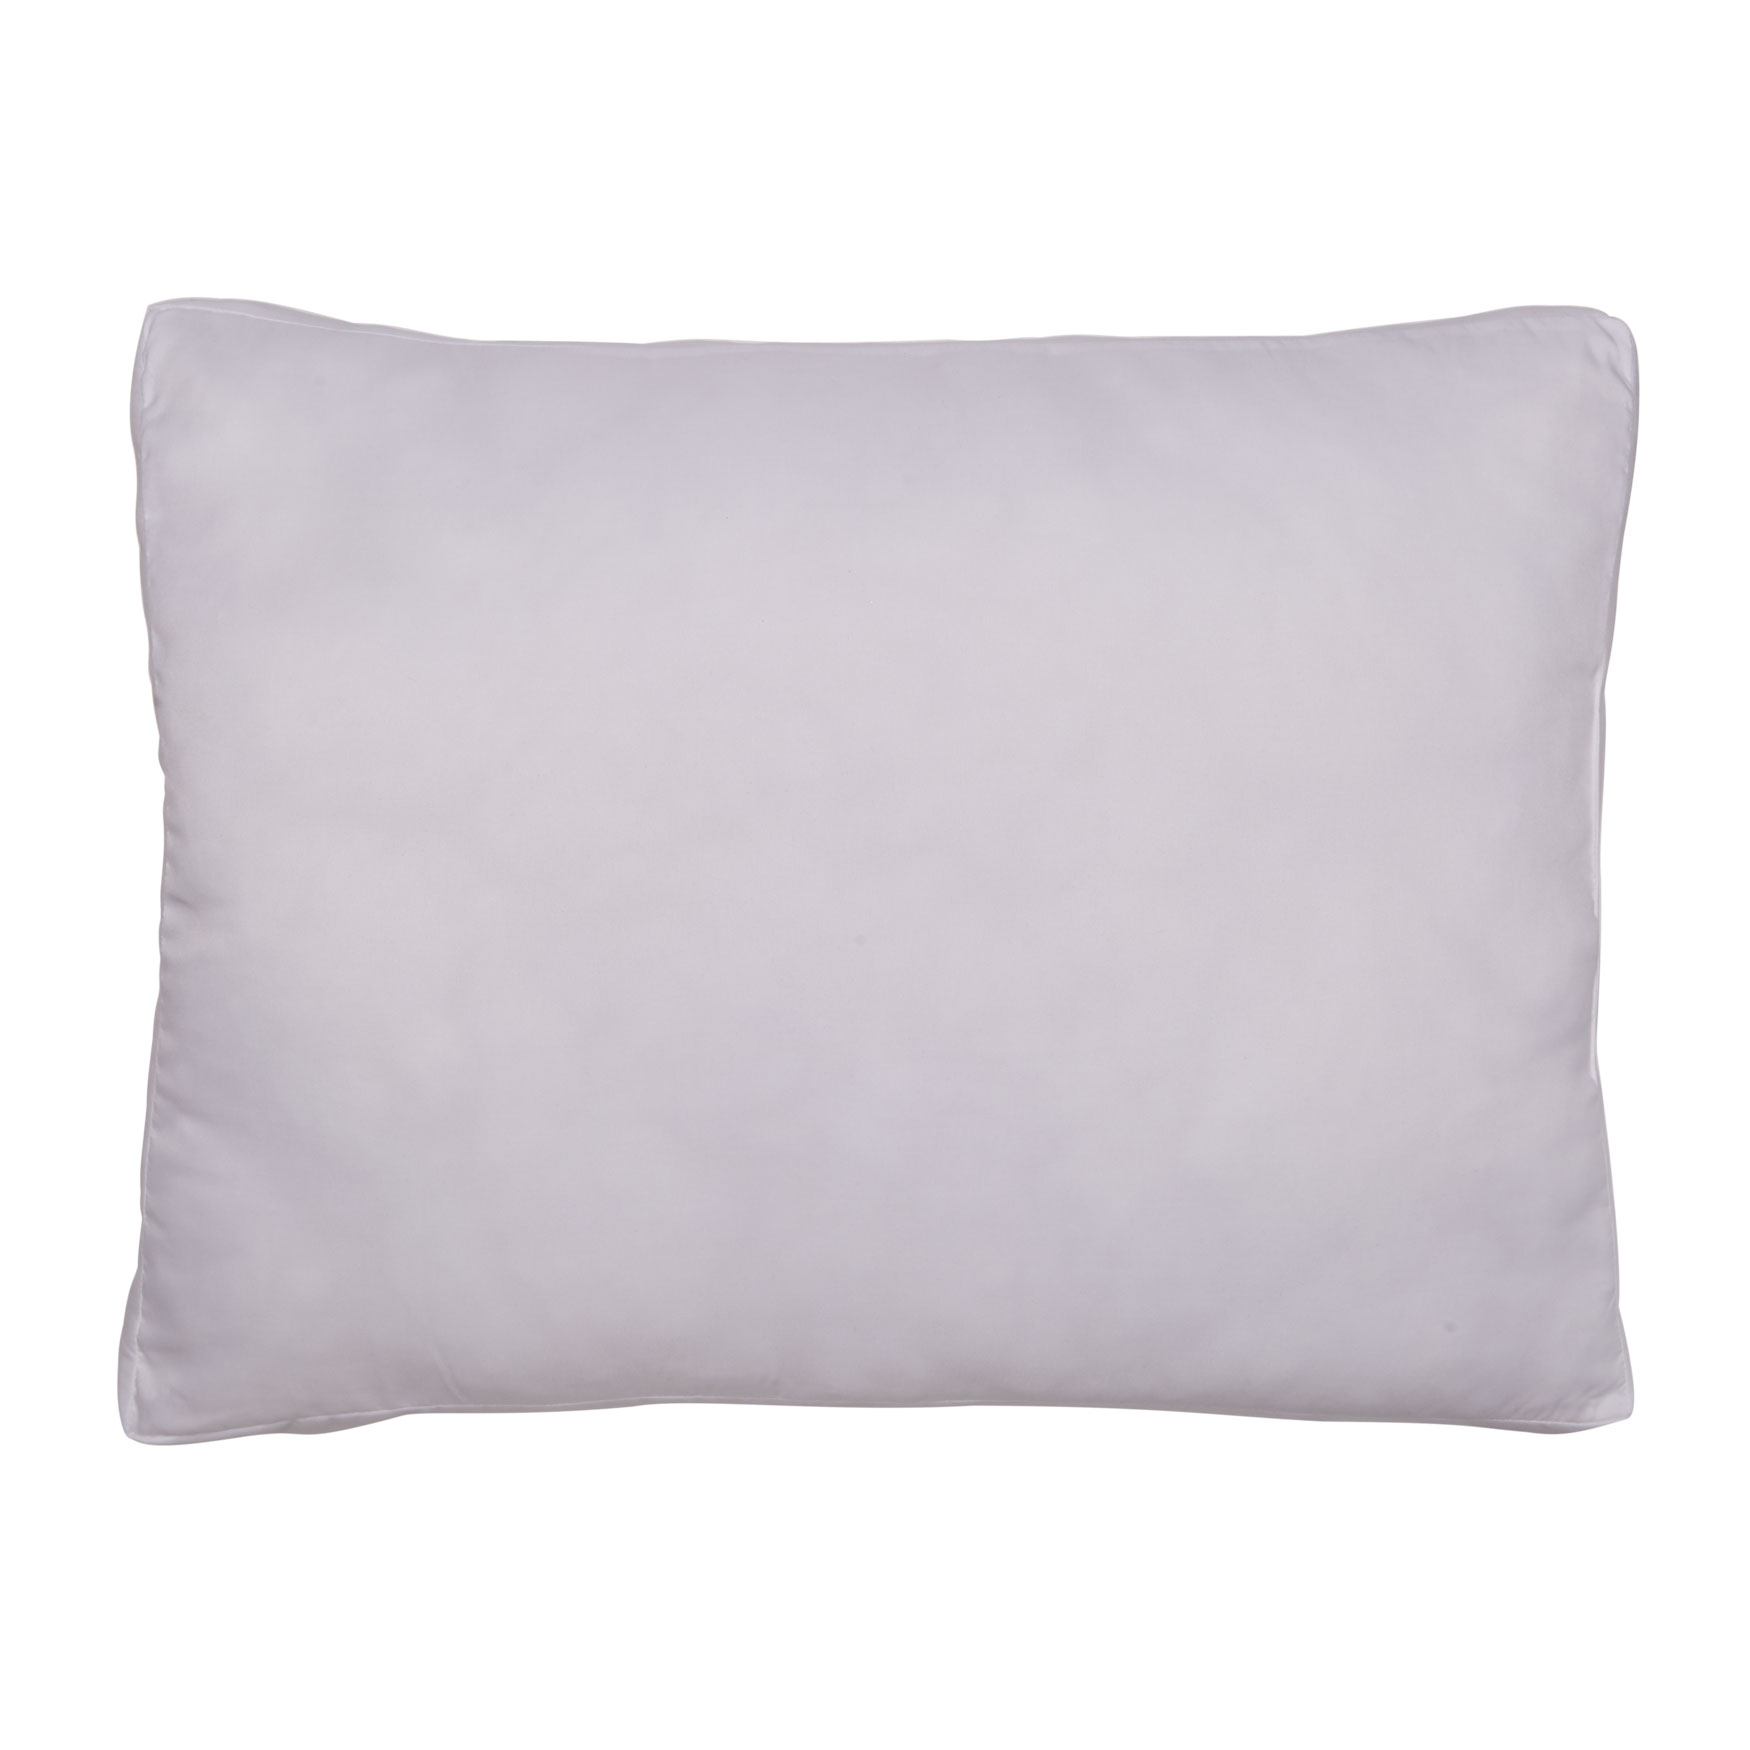 Pet Bed Cushion Insert, WHITE